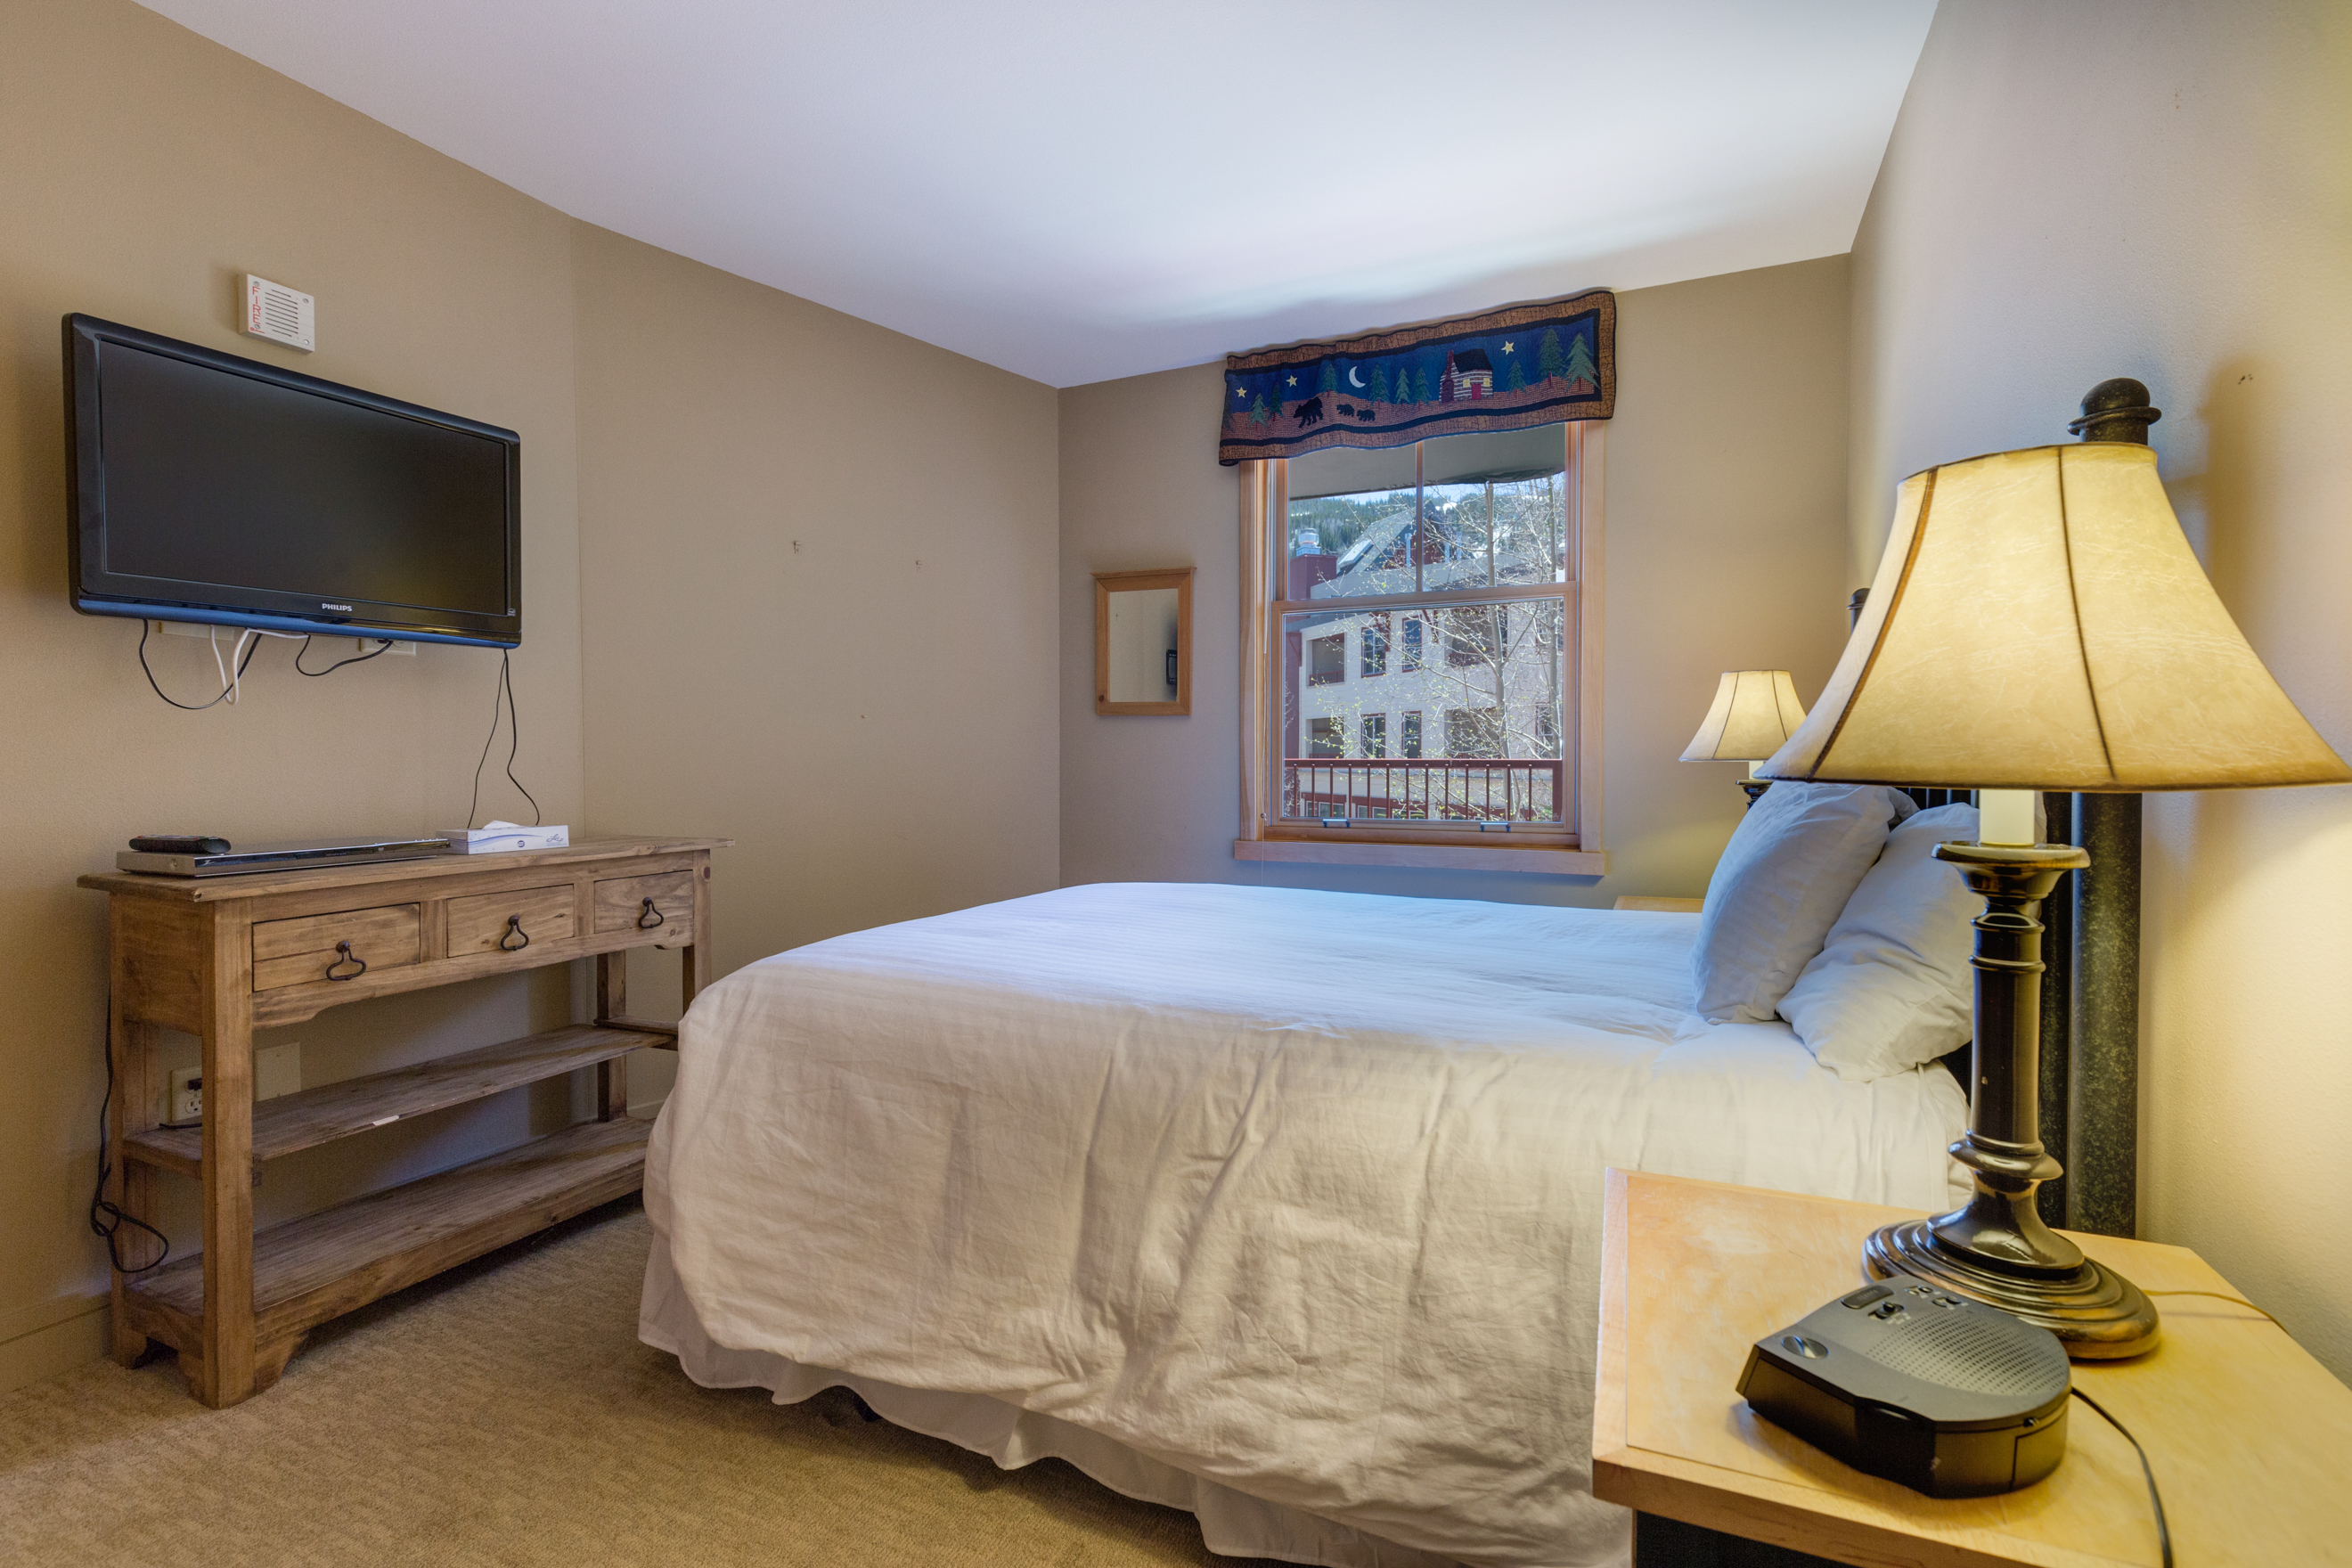 The bedroom features a queen-sized bed Ivory White Bedding and a flat screen TV.